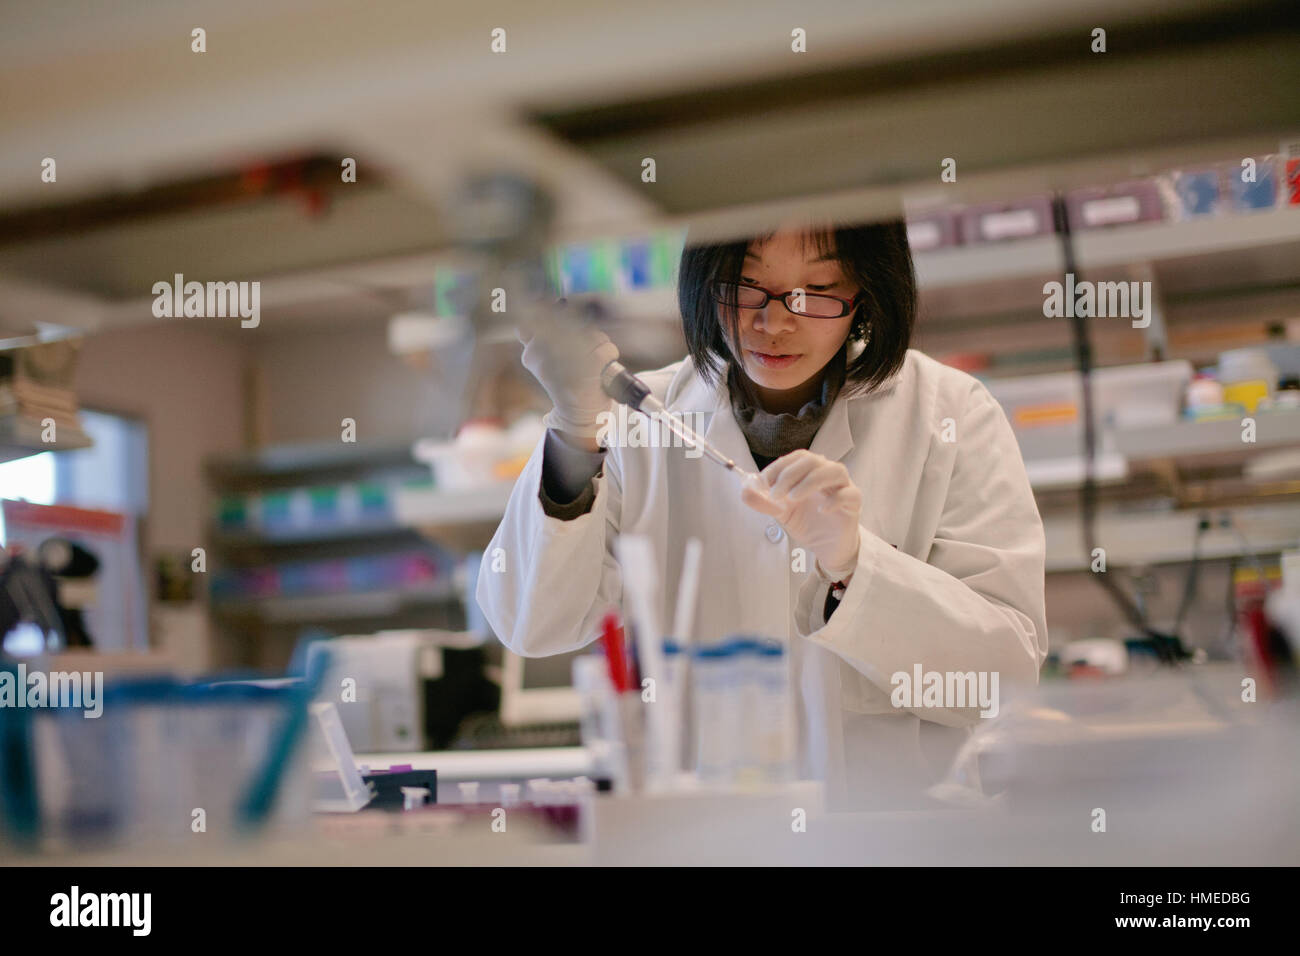 Asian Scientist Pipetting at a Biomedical Laboratory - Stock Image